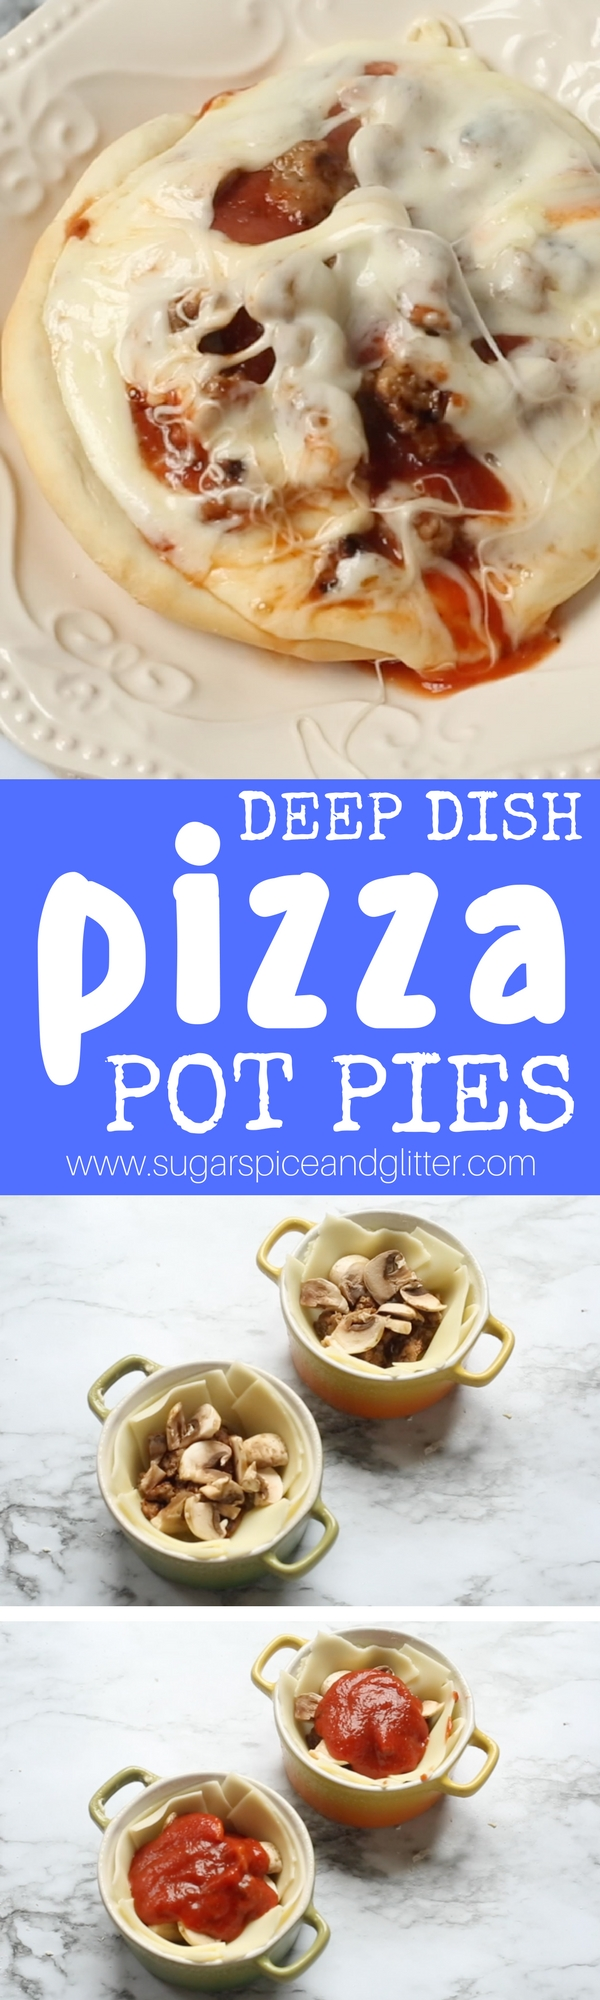 Forget boring pot pies, this pizza pot pie is delicious recipe your whole family will go crazy for - and the kids will love helping to make!